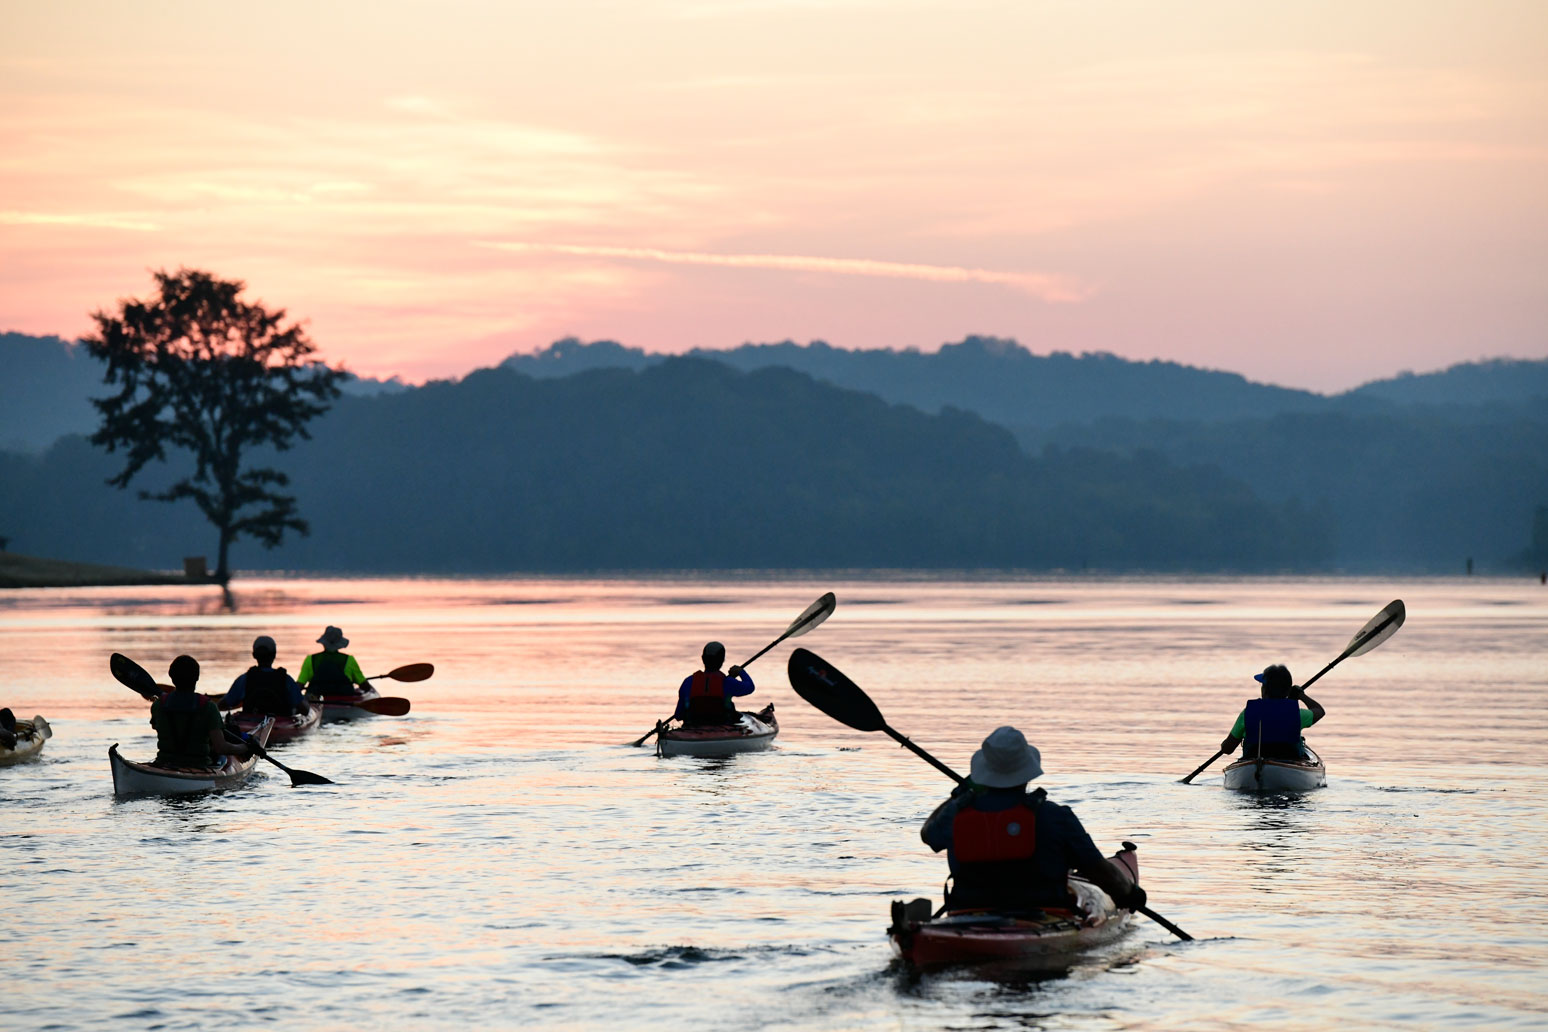 Villagers kayaking at sunrise.